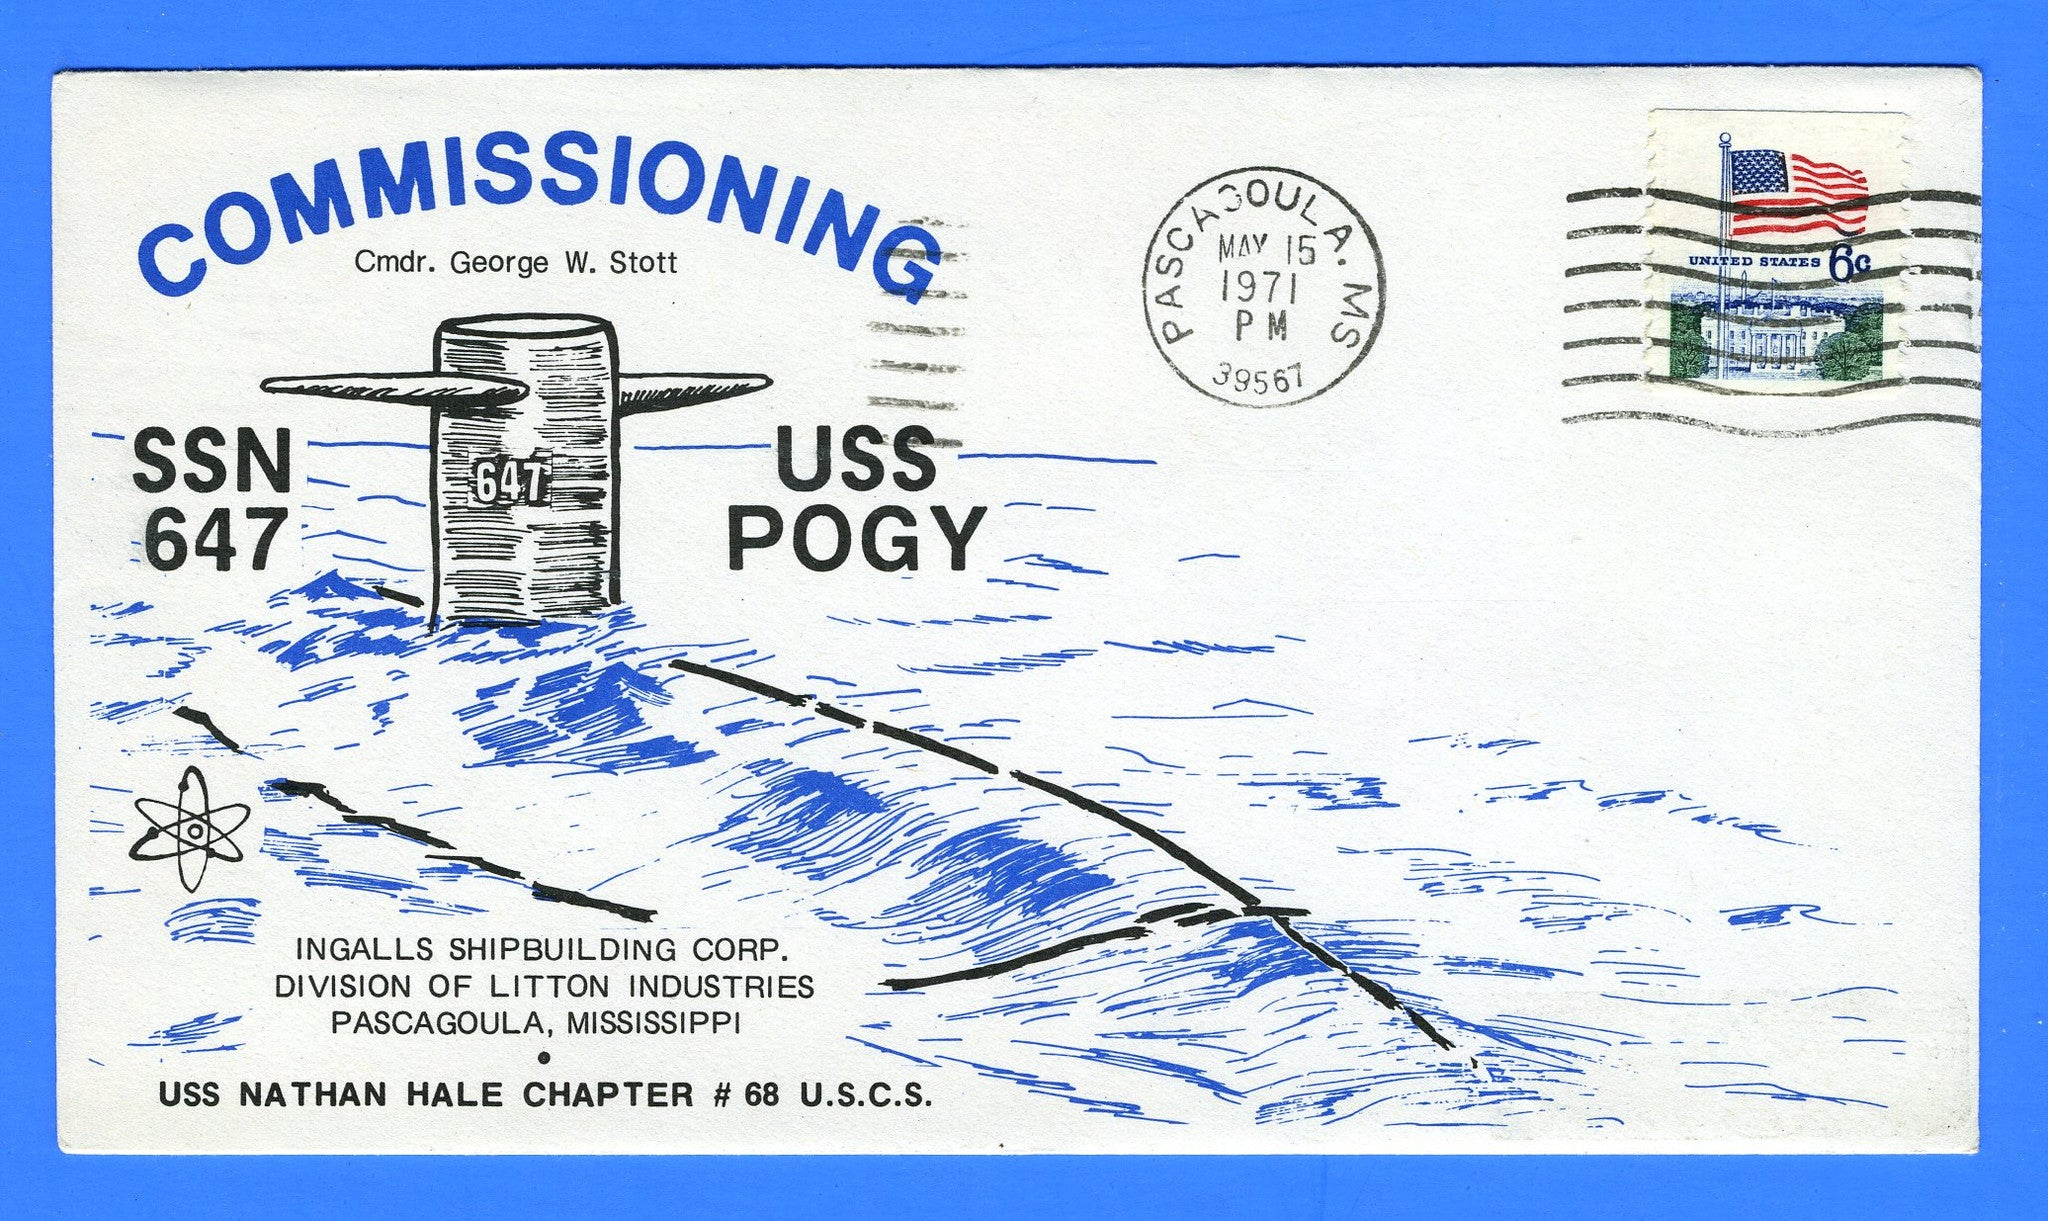 USS Pogy SSN-647 Commissioning May 15, 1971